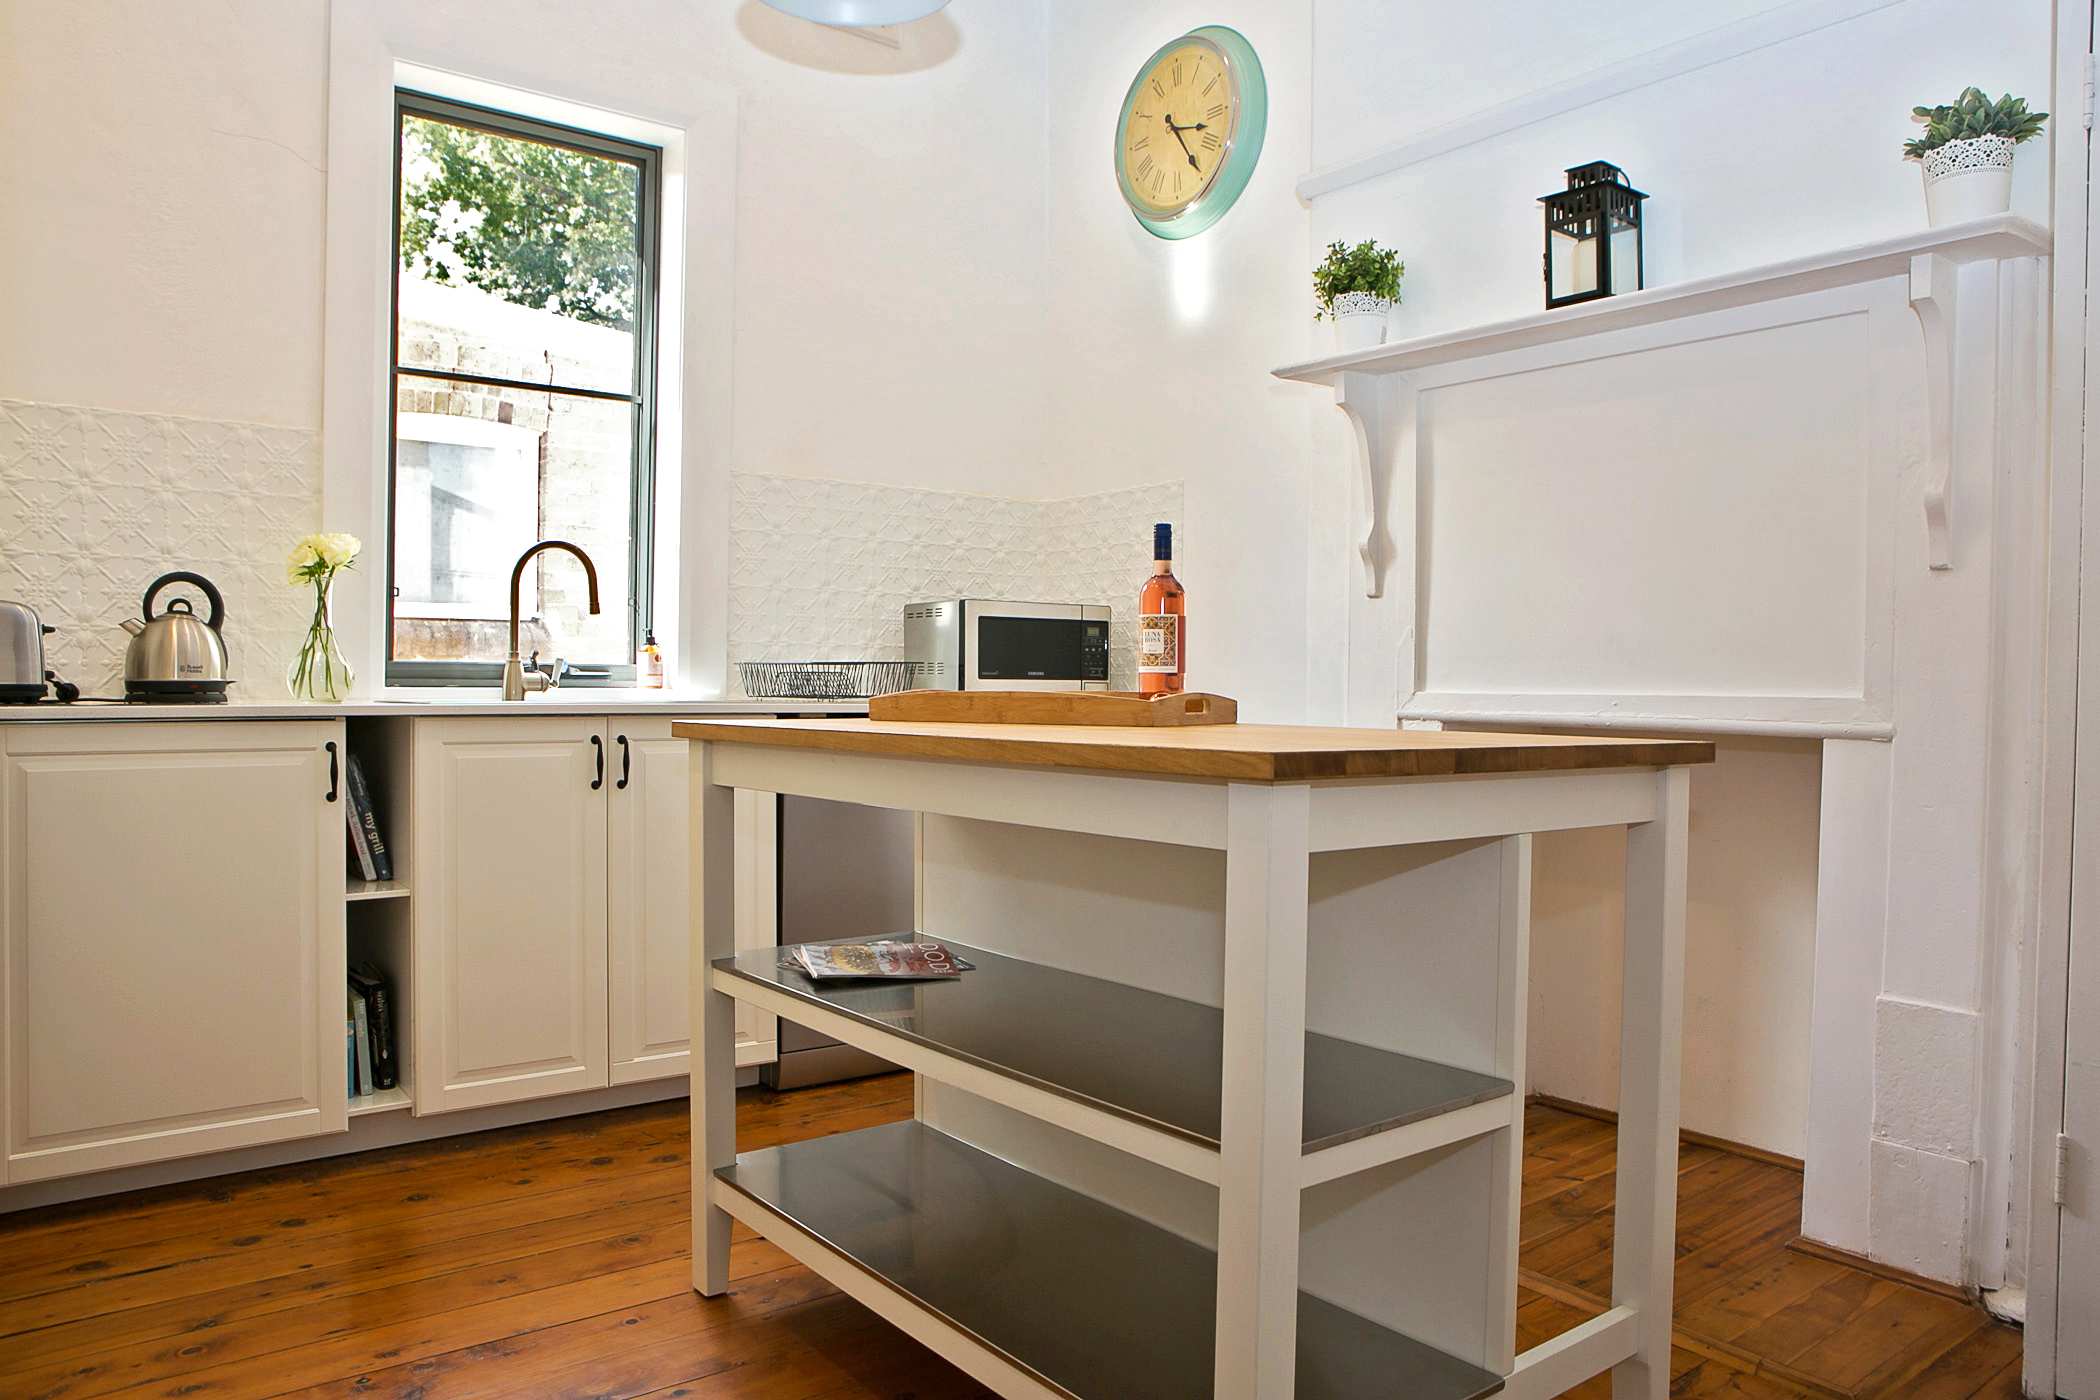 Dreamers Cottage - Newly Renovated Kitchen gallery image